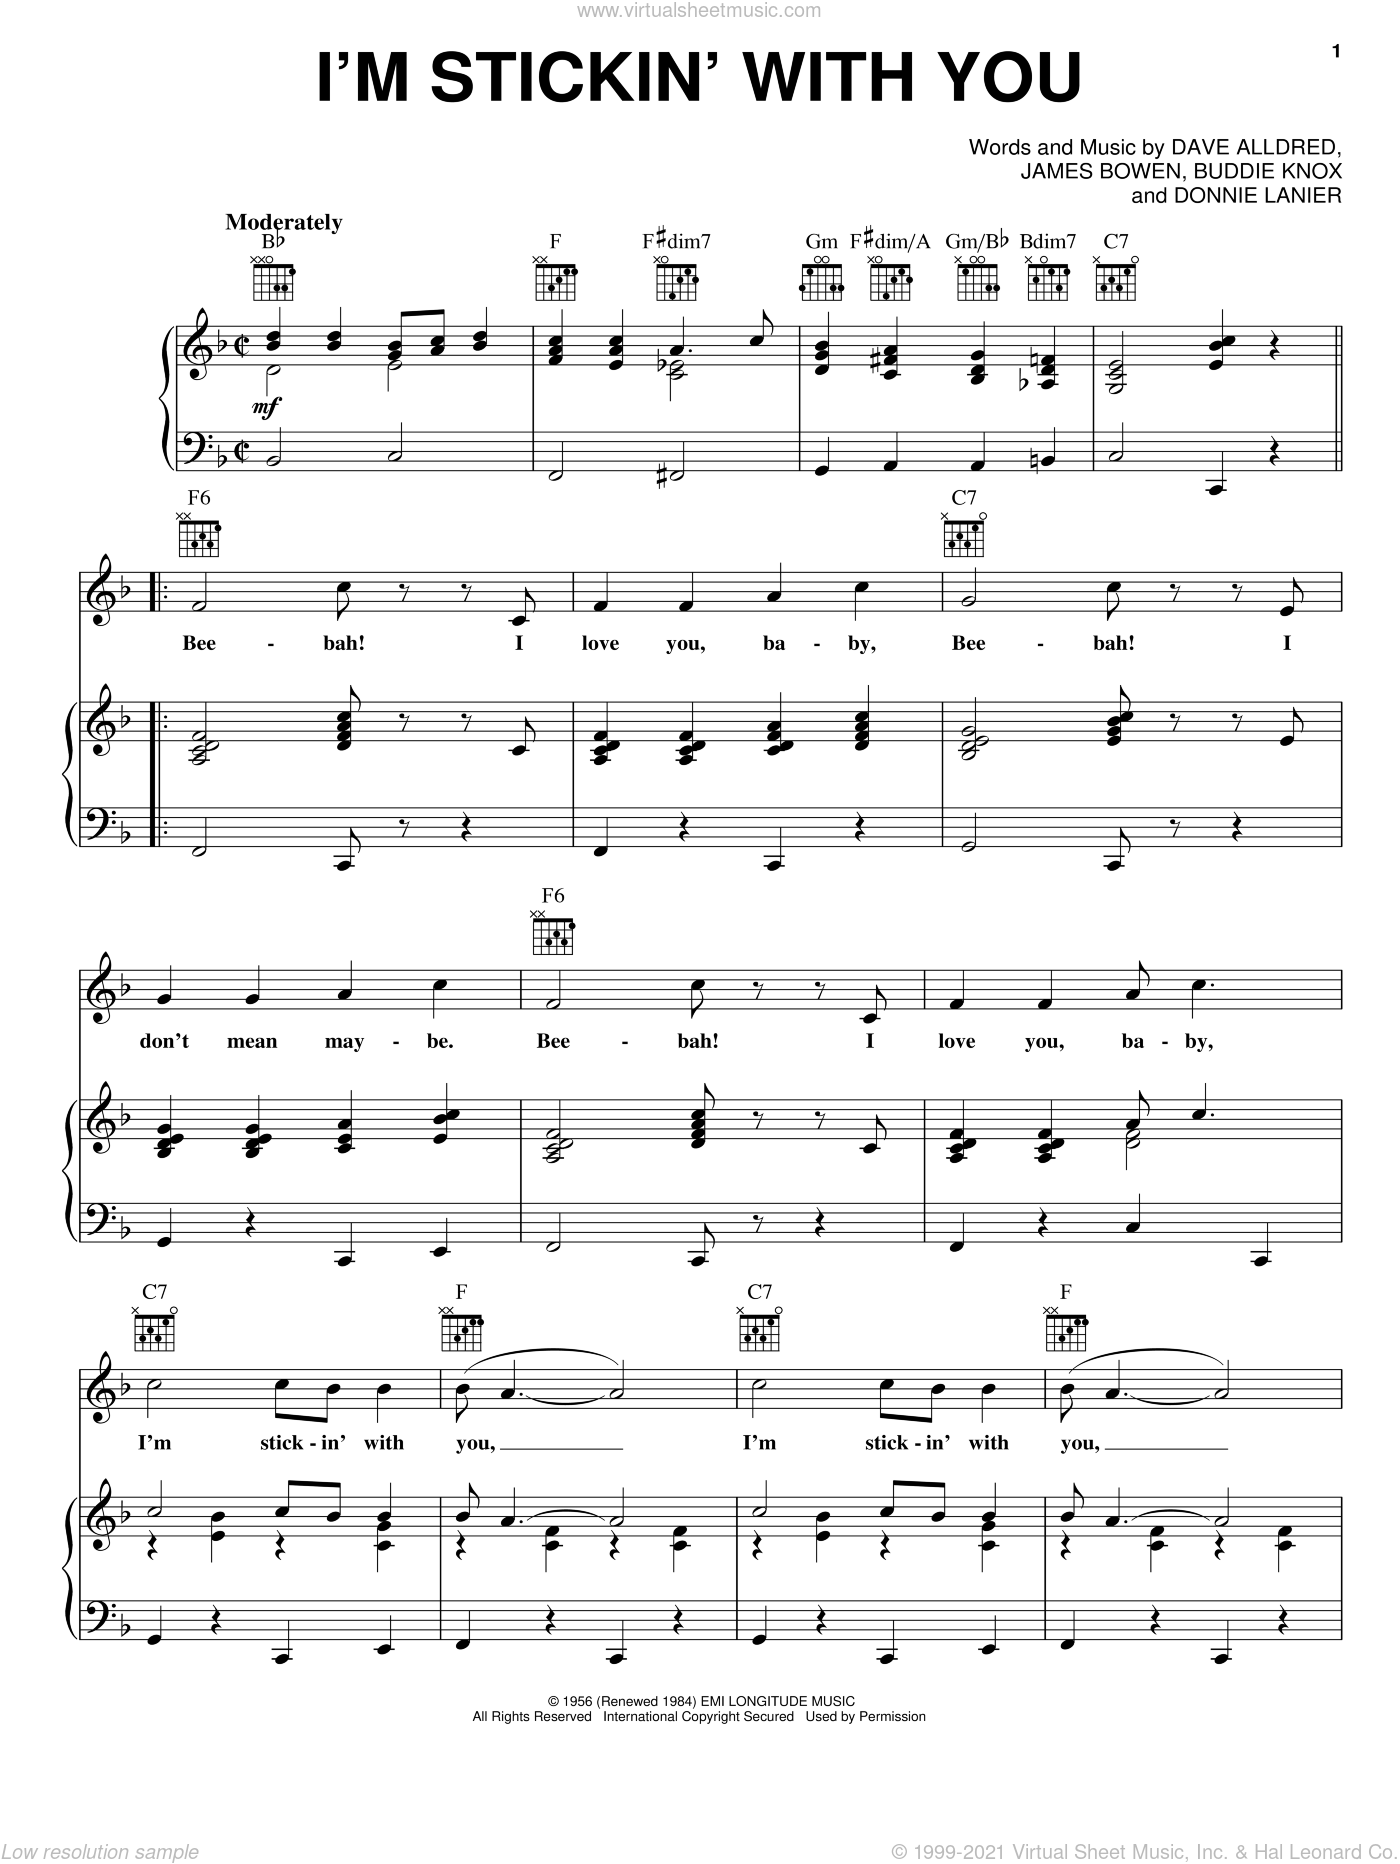 I'm Stickin' With You sheet music for voice, piano or guitar by Jimmy Bowen, Buddie Knox, Dave Alldred and Donnie Lanier, intermediate skill level